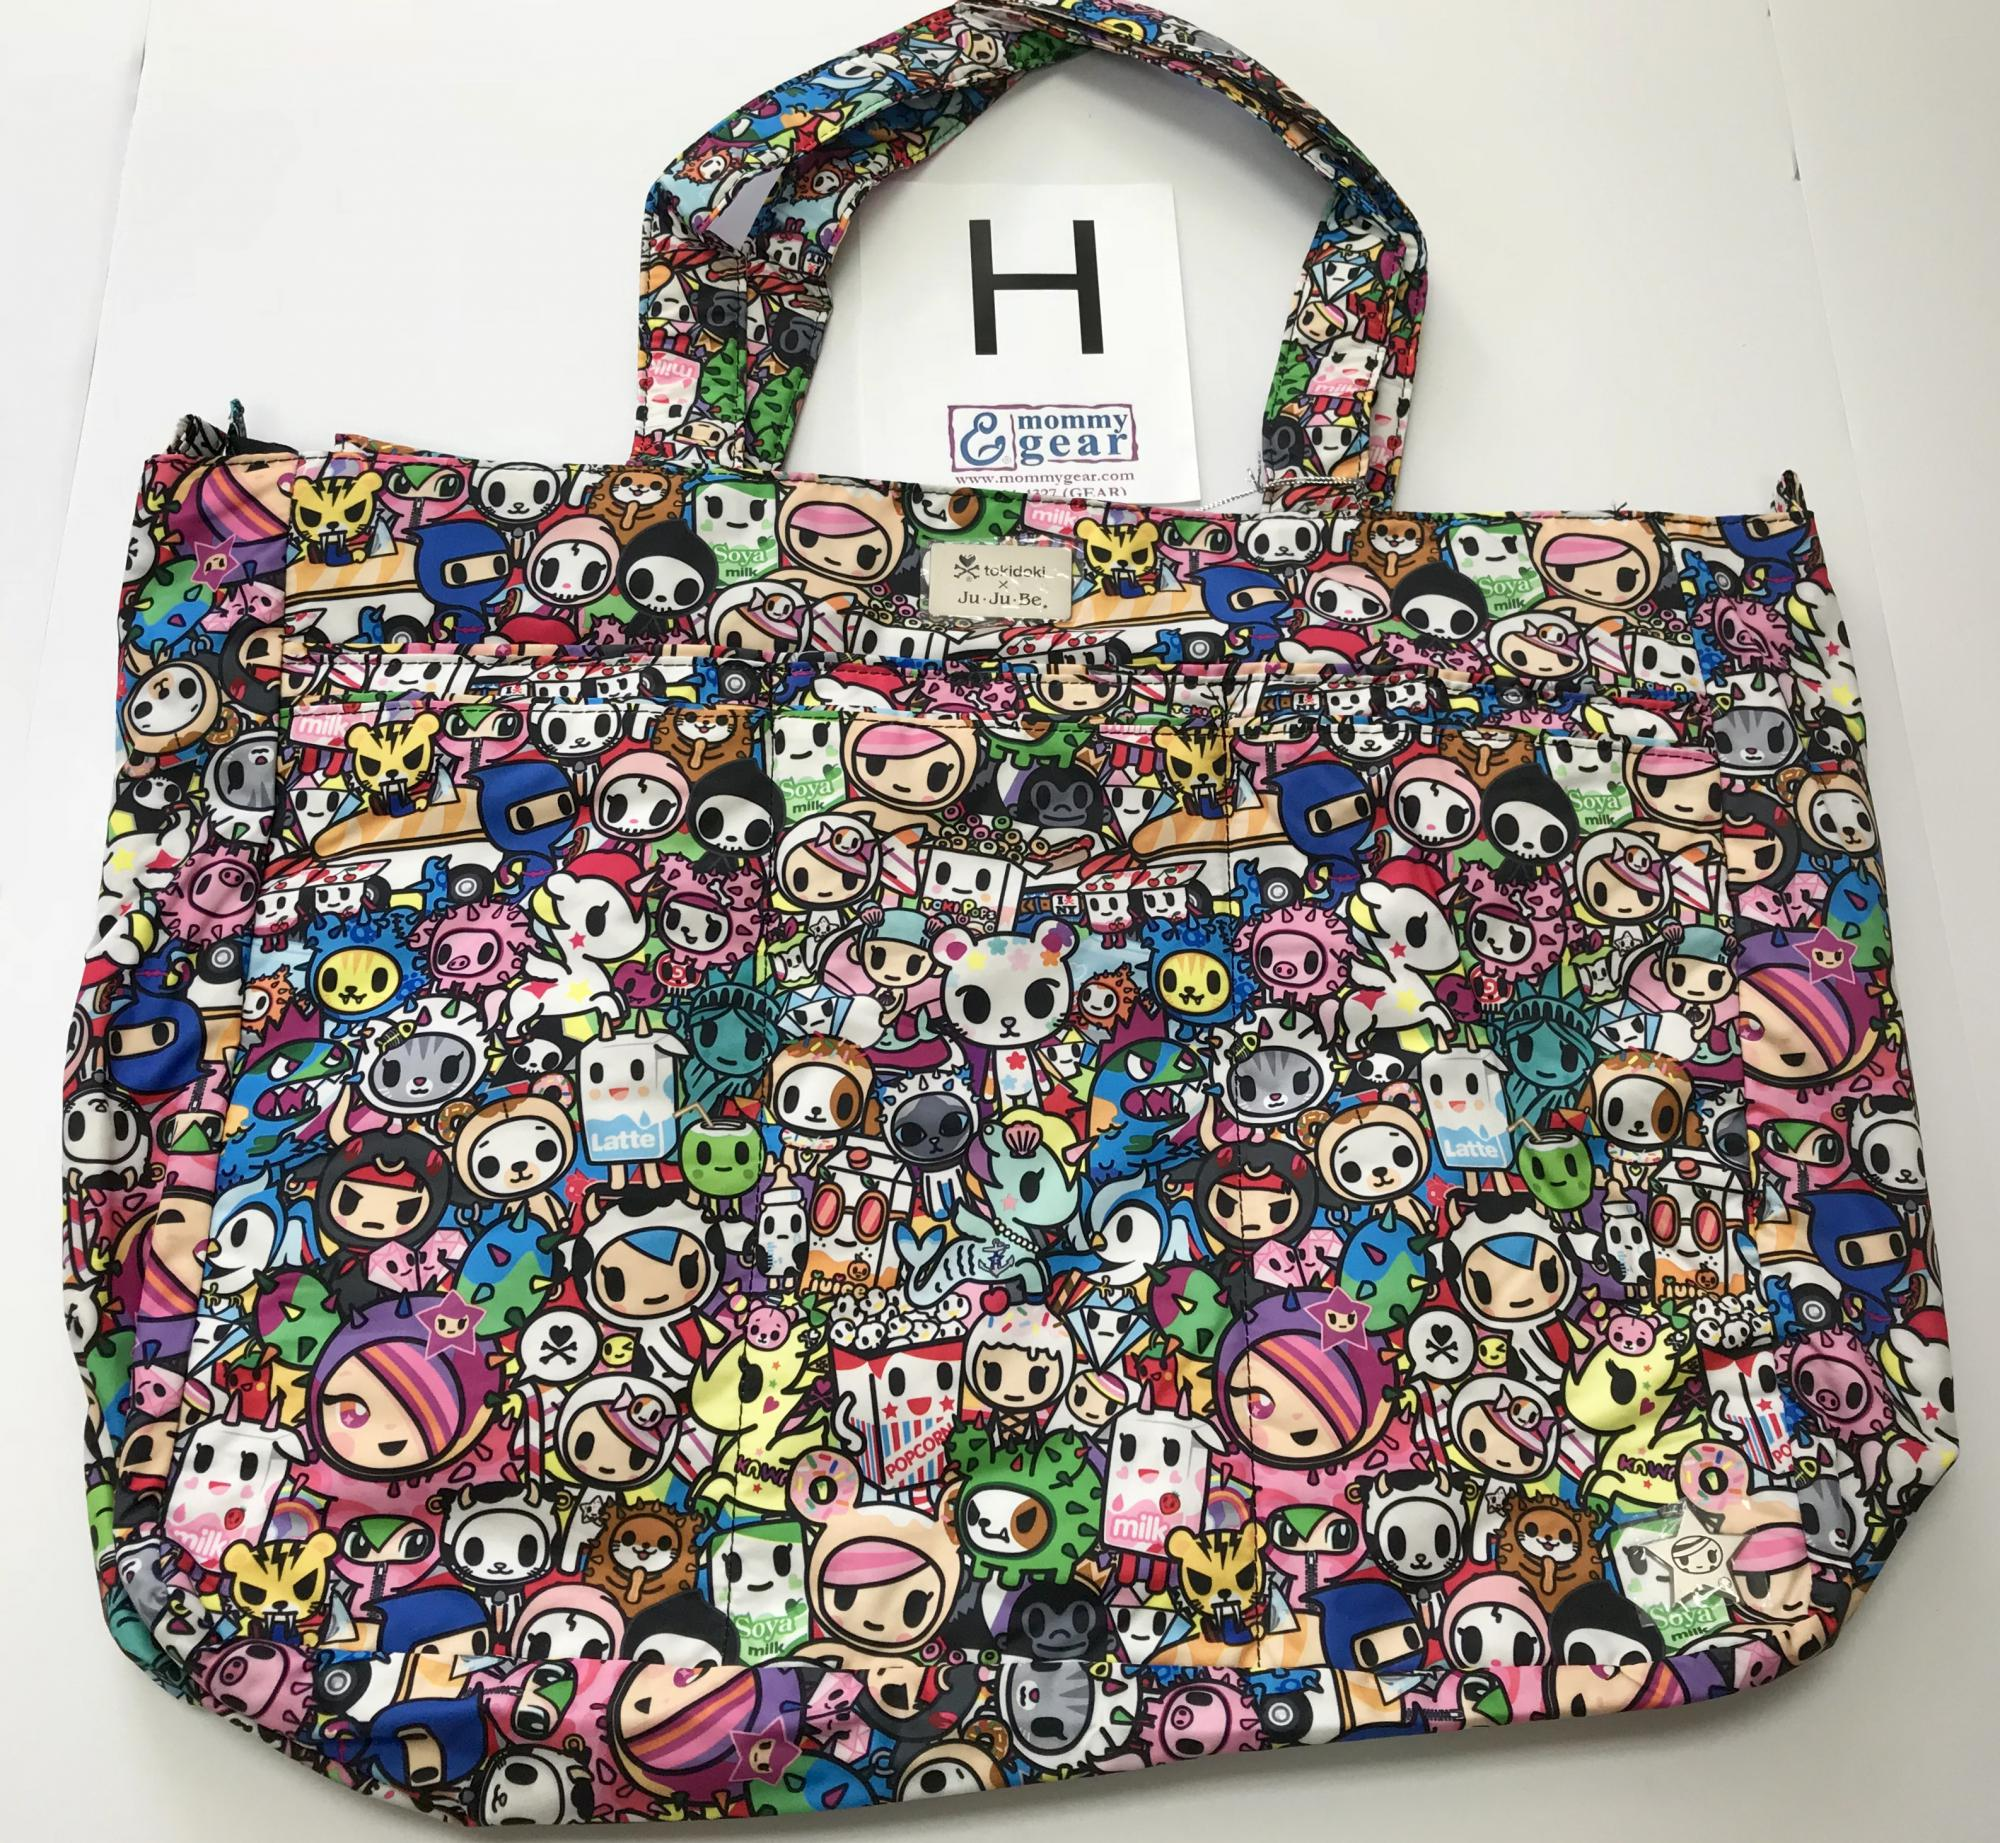 ju-ju-be-tokidoki-iconic-2.0-super-be-pp-h.jpg